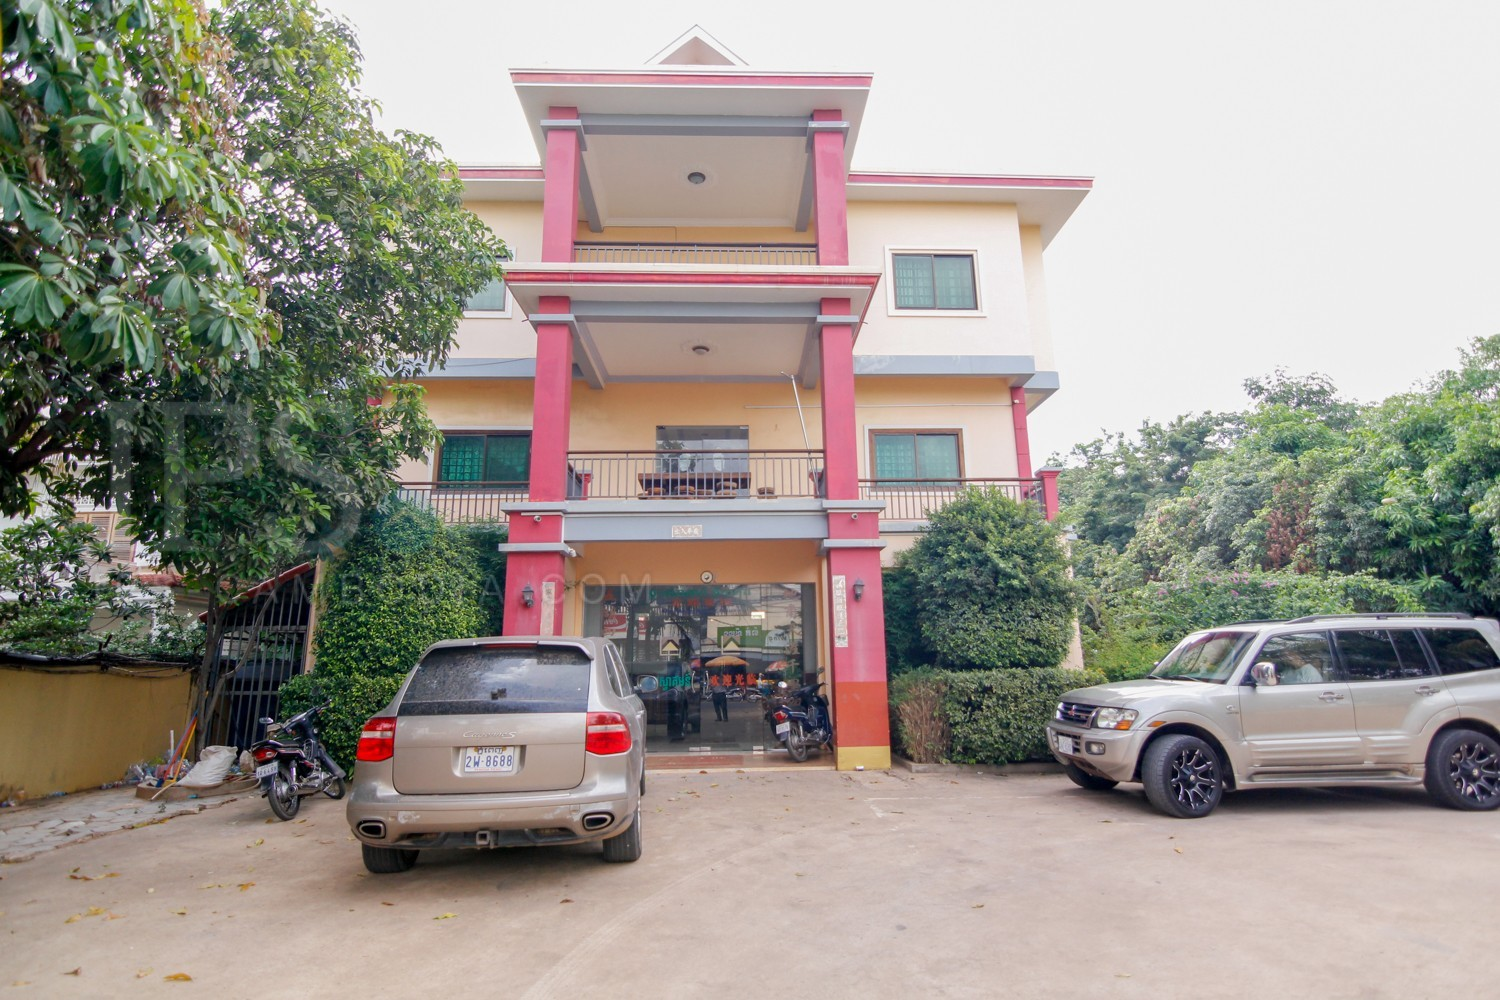 60 Room Guest House  For Sale - Svay Dangkum, Siem Reap